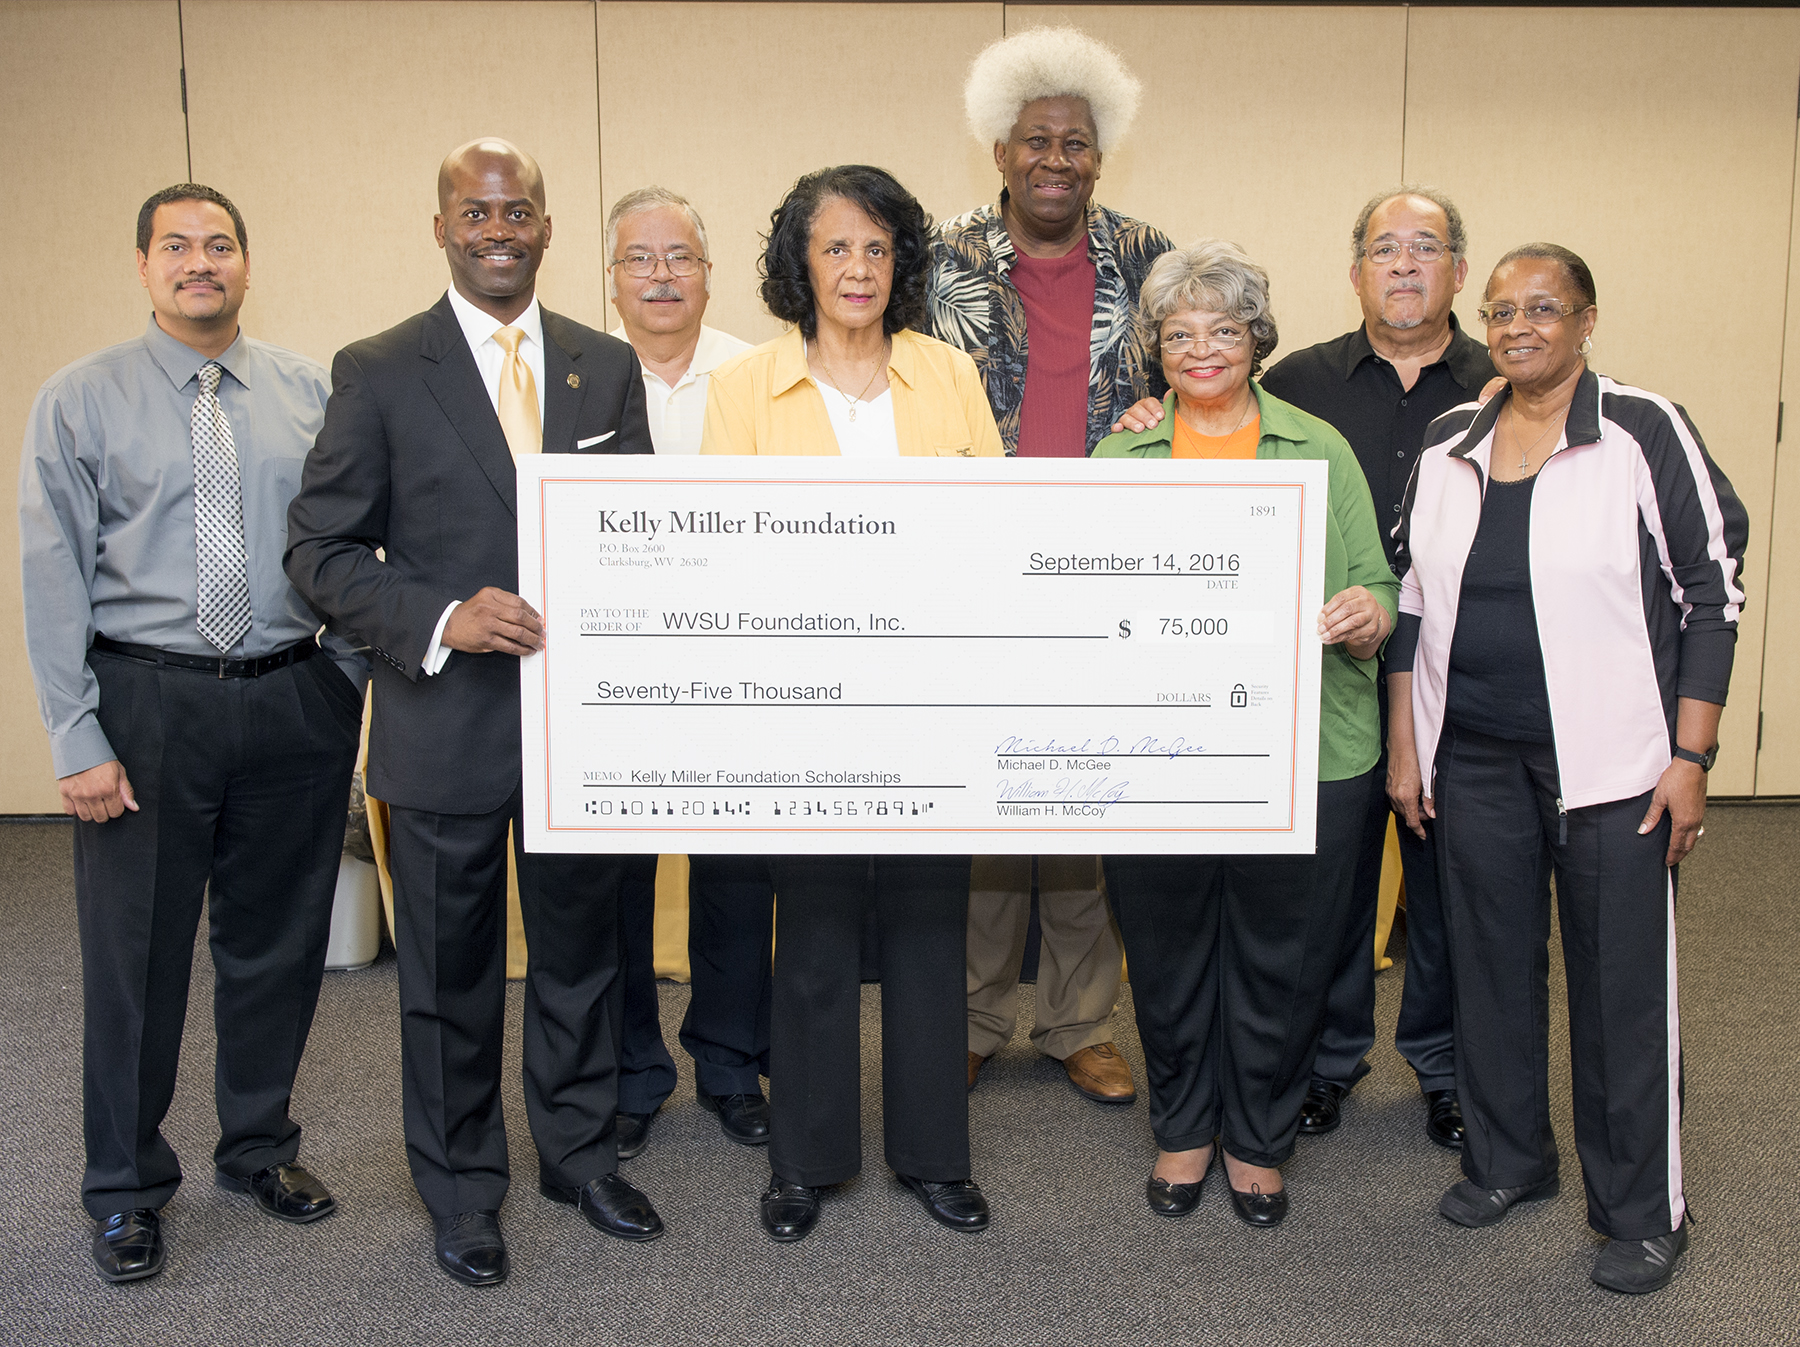 Kelly Miller Foundation Presents Scholarship Funds to WVSU President Jenkins